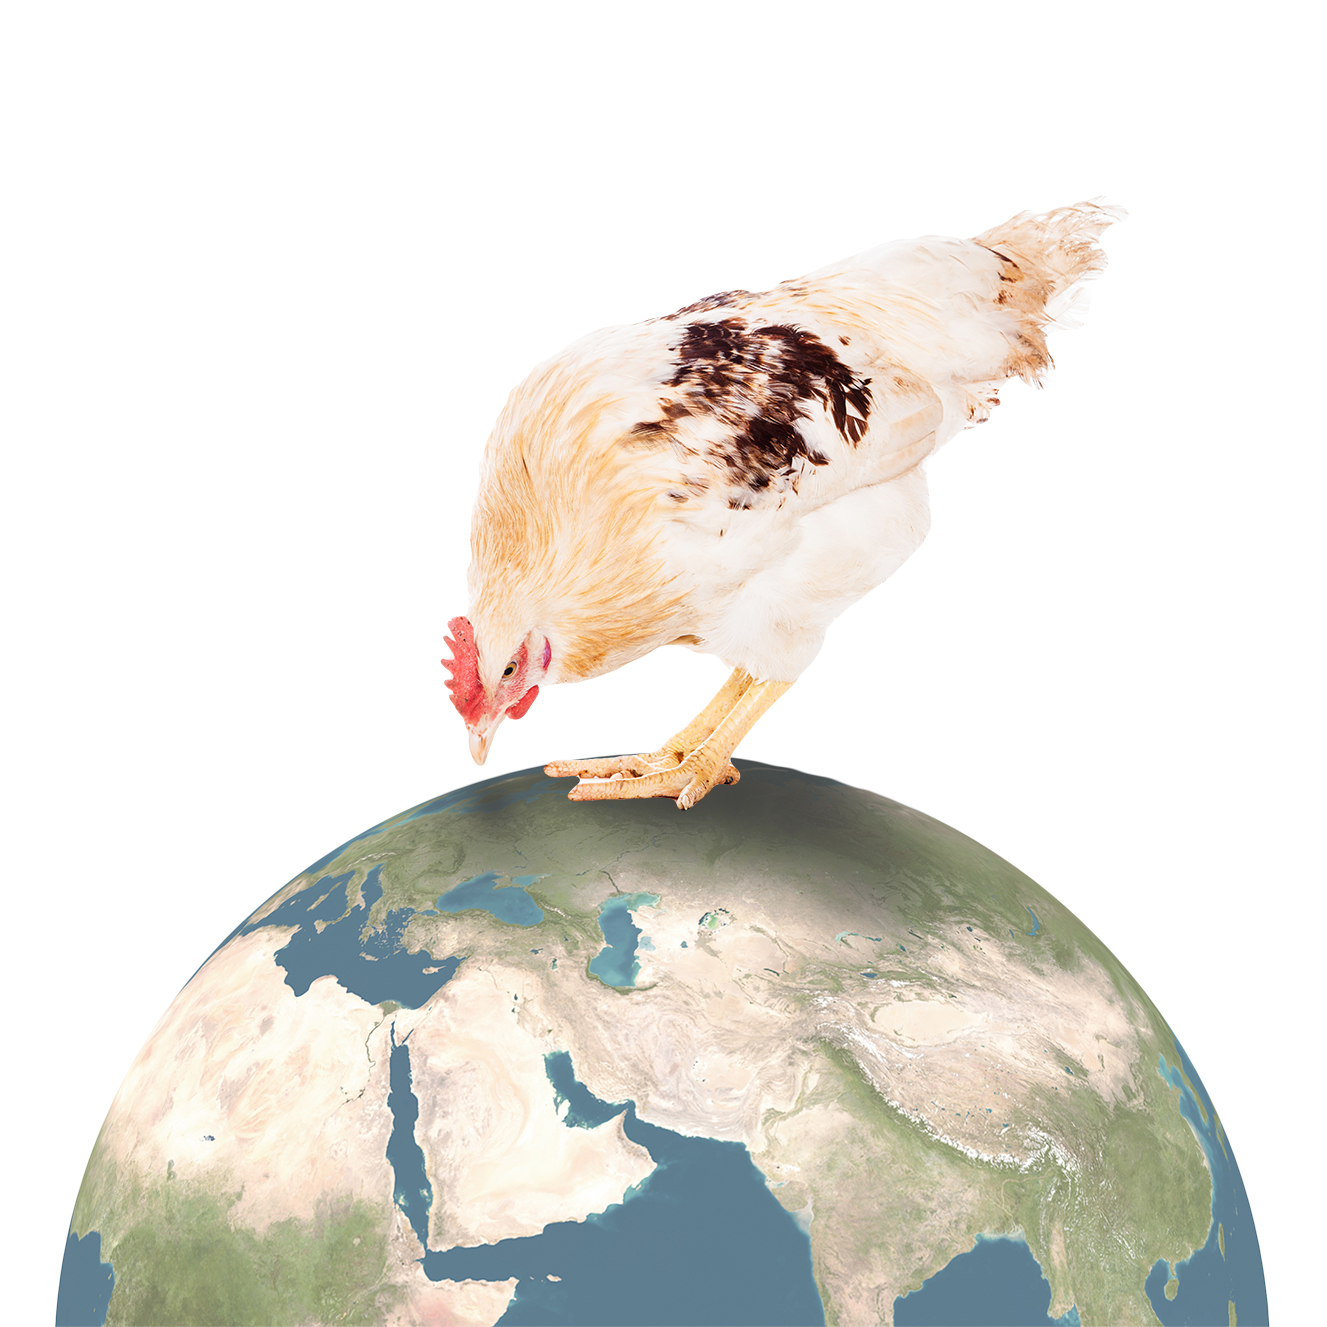 Chicken on earth